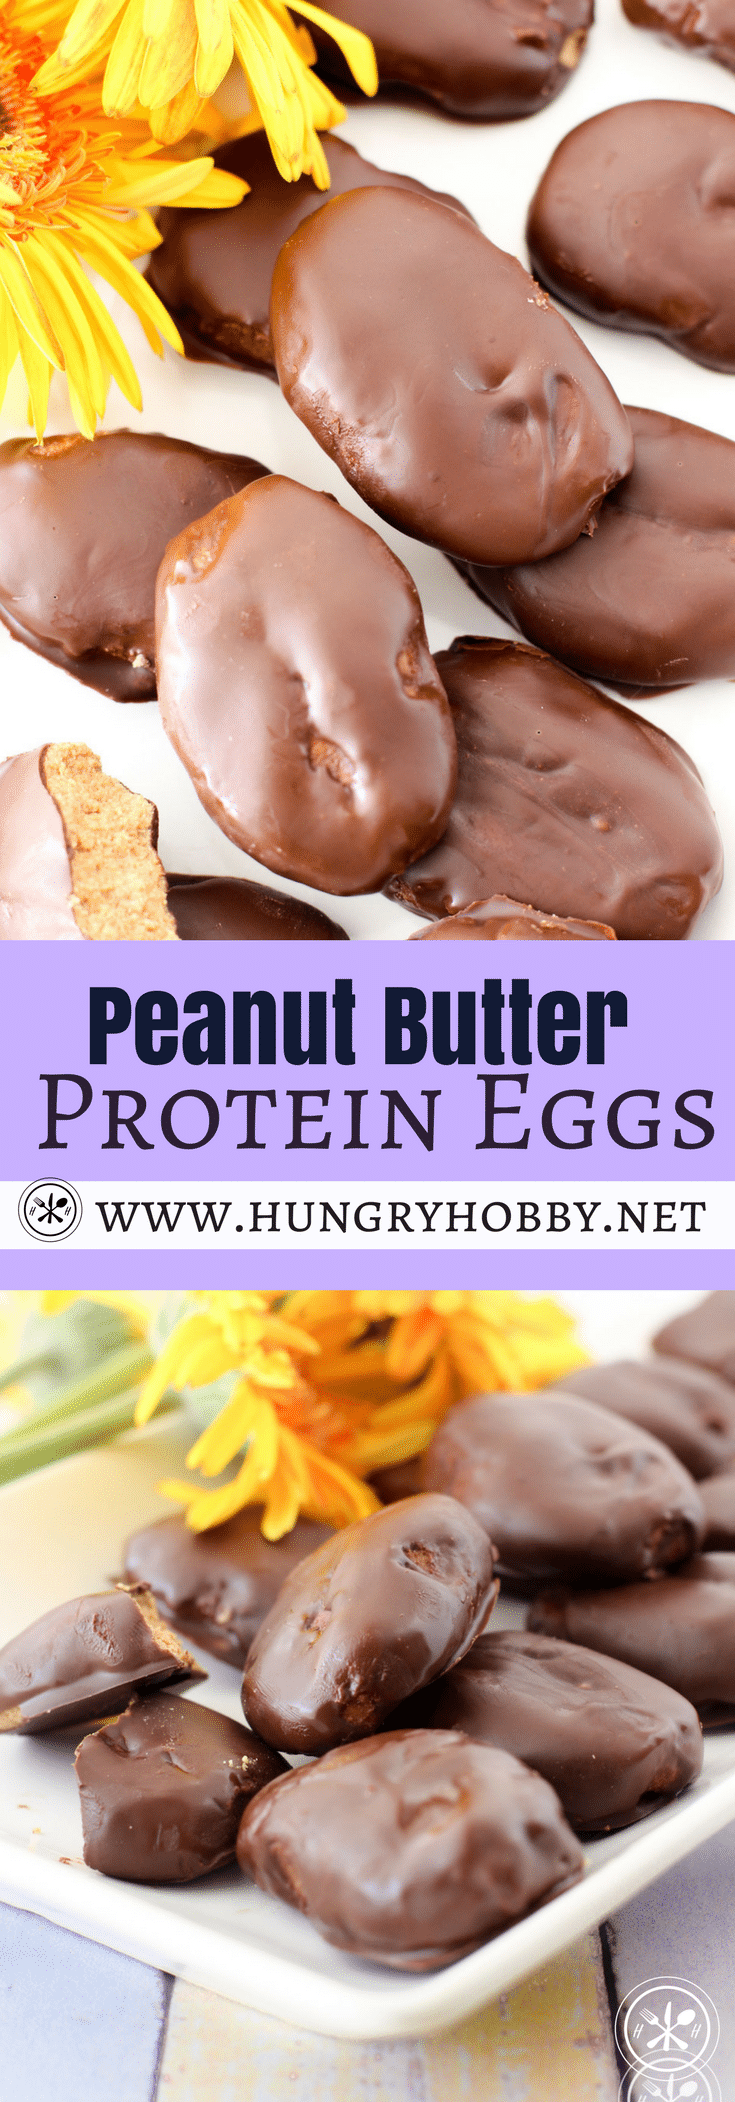 Love peanut butter eggs?  This version of peanut butter eggs is packed with protein but you'd never know it because it tasted just as good as the real thing!  #cleaneating #glutenfree #dessert #protein #peanutbutter #easter #hungryhobby